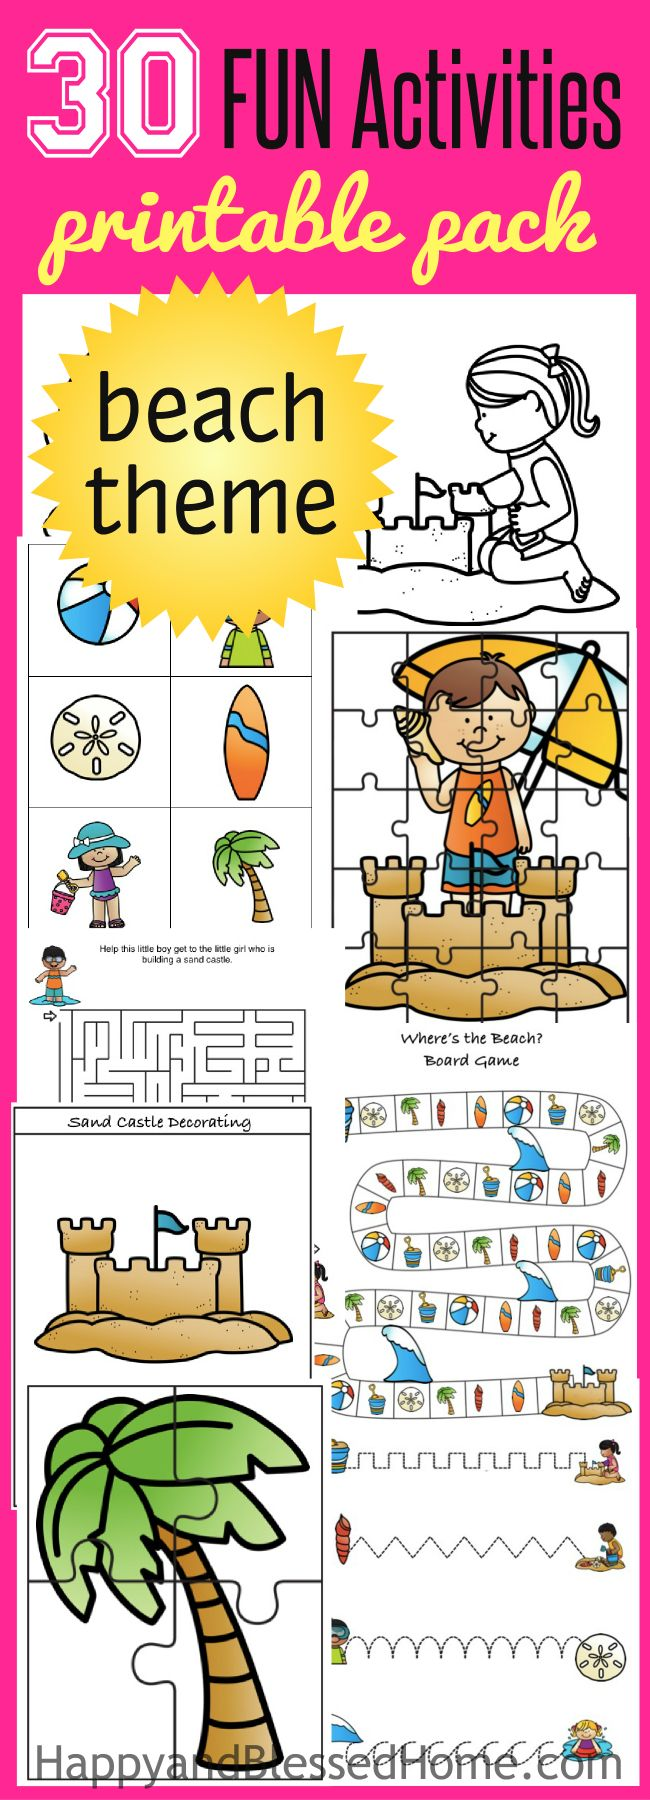 FREE Fun 27 Page Beach Activity Pack  - fun free printable activities for kids: board game, mazes, puzzles, coloring, matching and memory game, seashell crafts, tropical lemonade punch, trail mix and more. Ad #BringTheTropicsHome with this free printable pack and fun beach activities for preschoolers and young children.